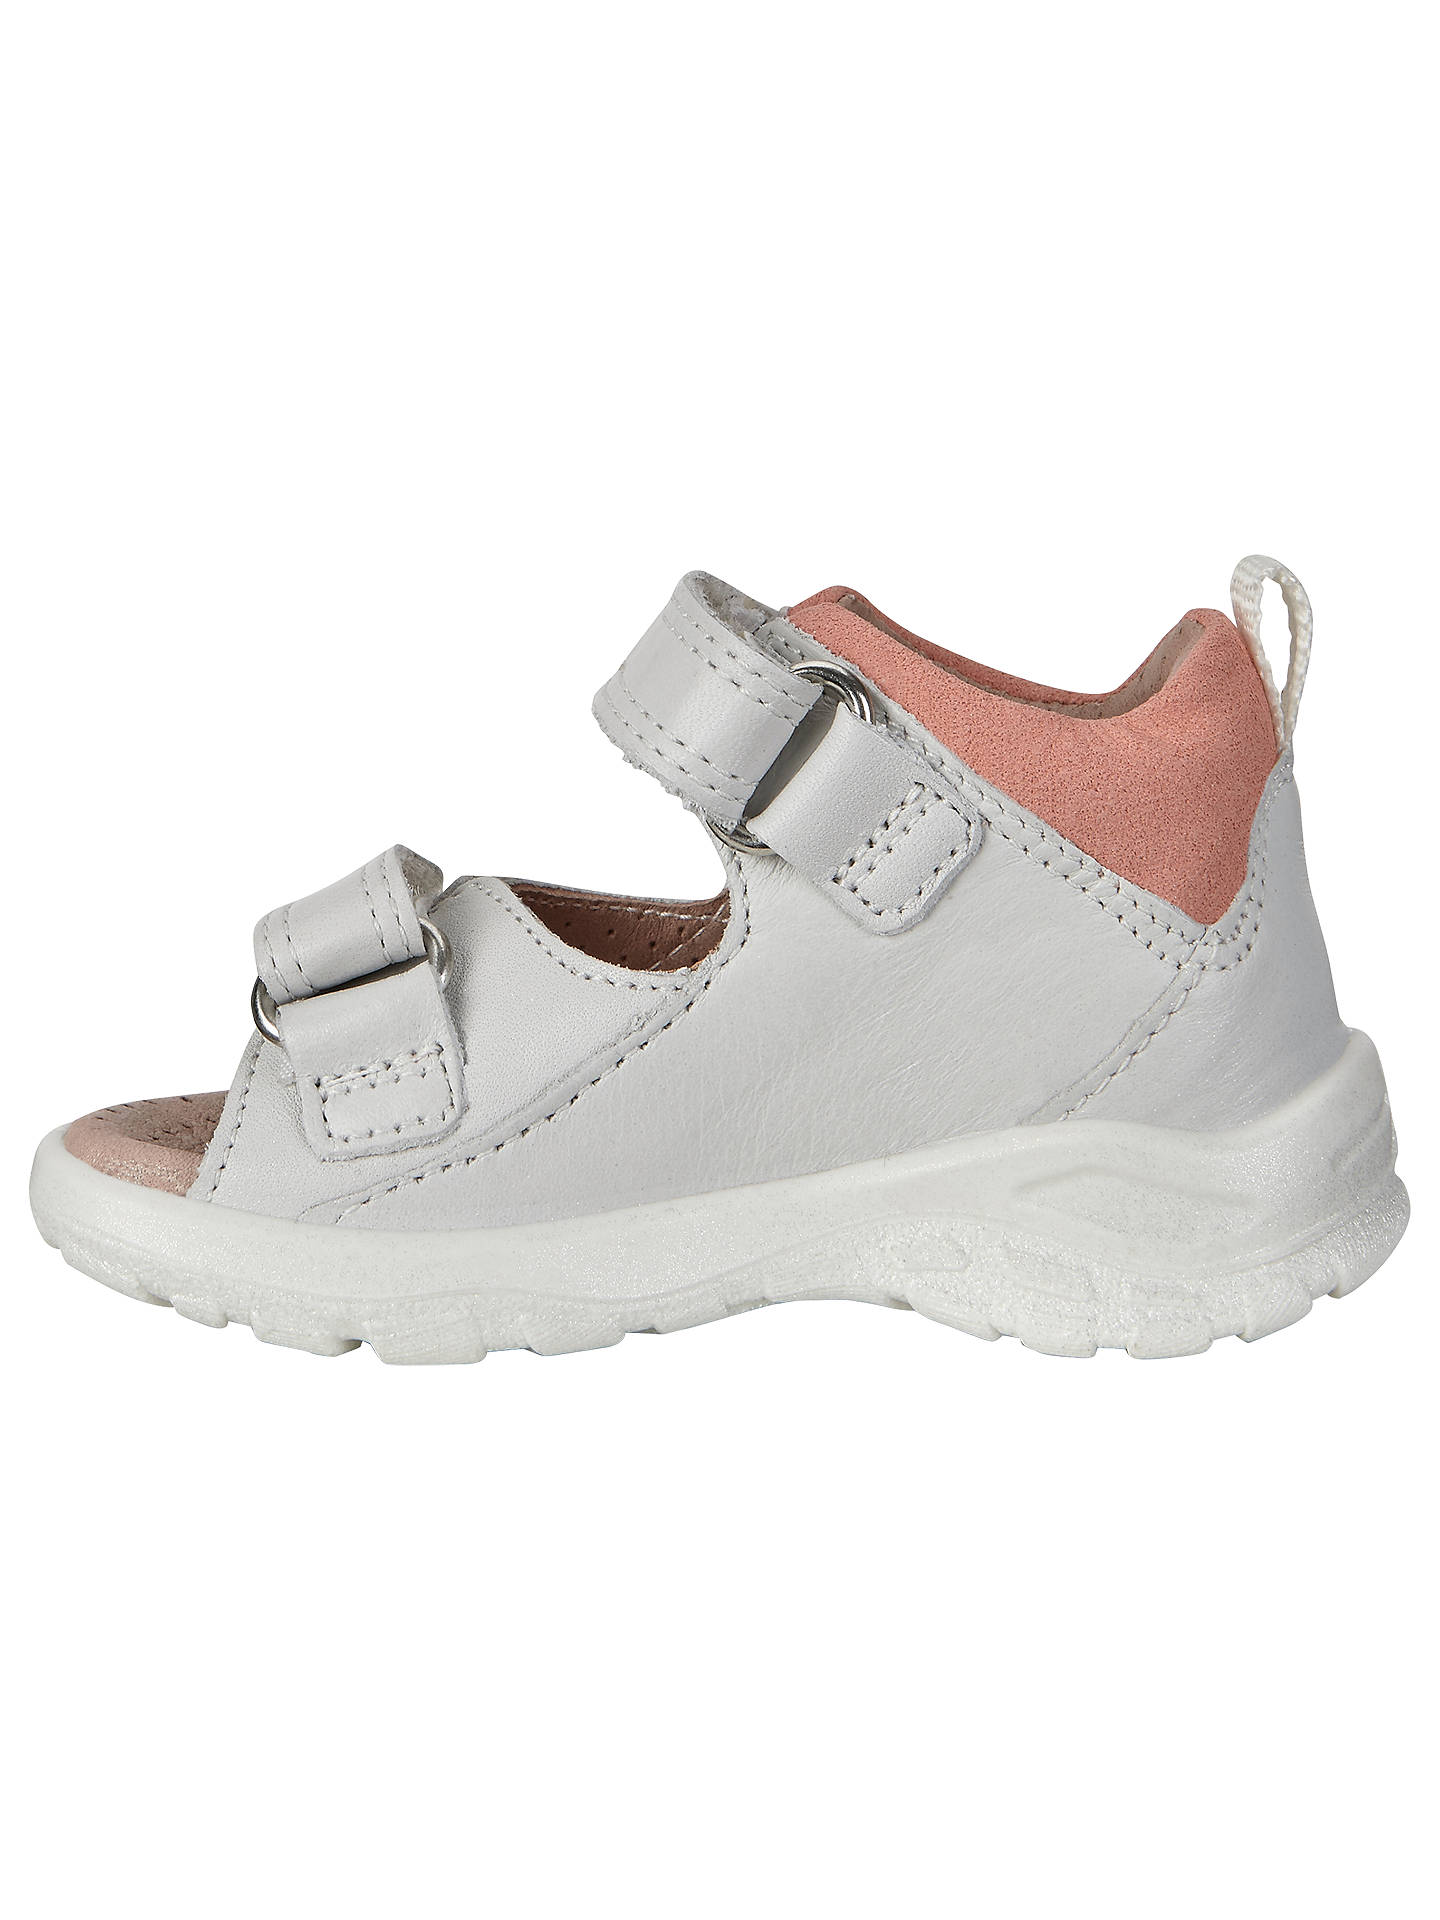 cb3f7663203a3 ... Buy ECCO Peekaboo Leather Sandals, White/Pink, 20 Online at  johnlewis.com